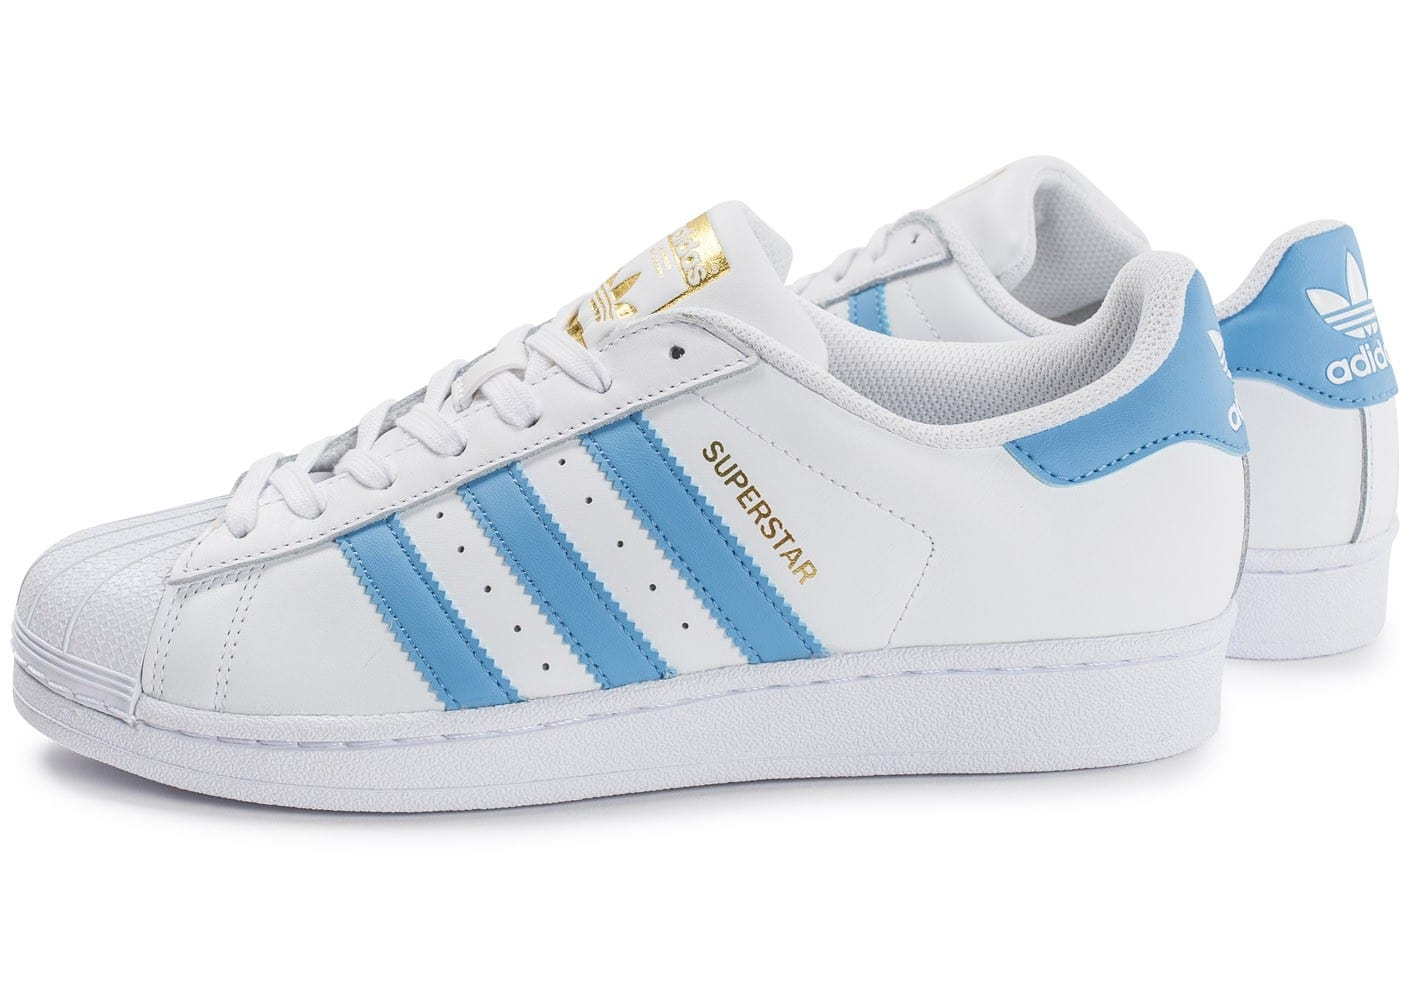 soldes adidas superstar blanc et bleu ciel chaussures homme chausport. Black Bedroom Furniture Sets. Home Design Ideas